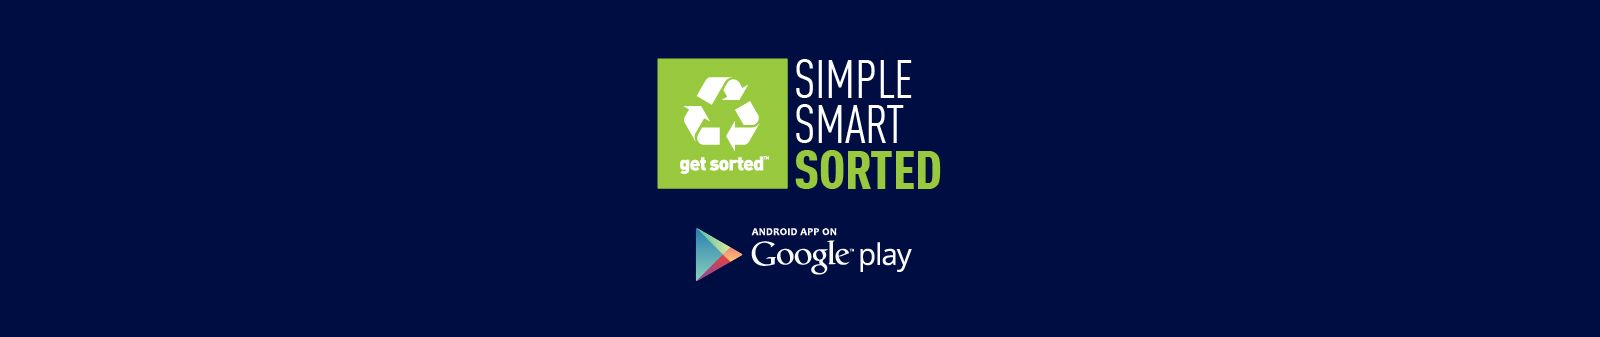 Download our app Get Sorted on Android